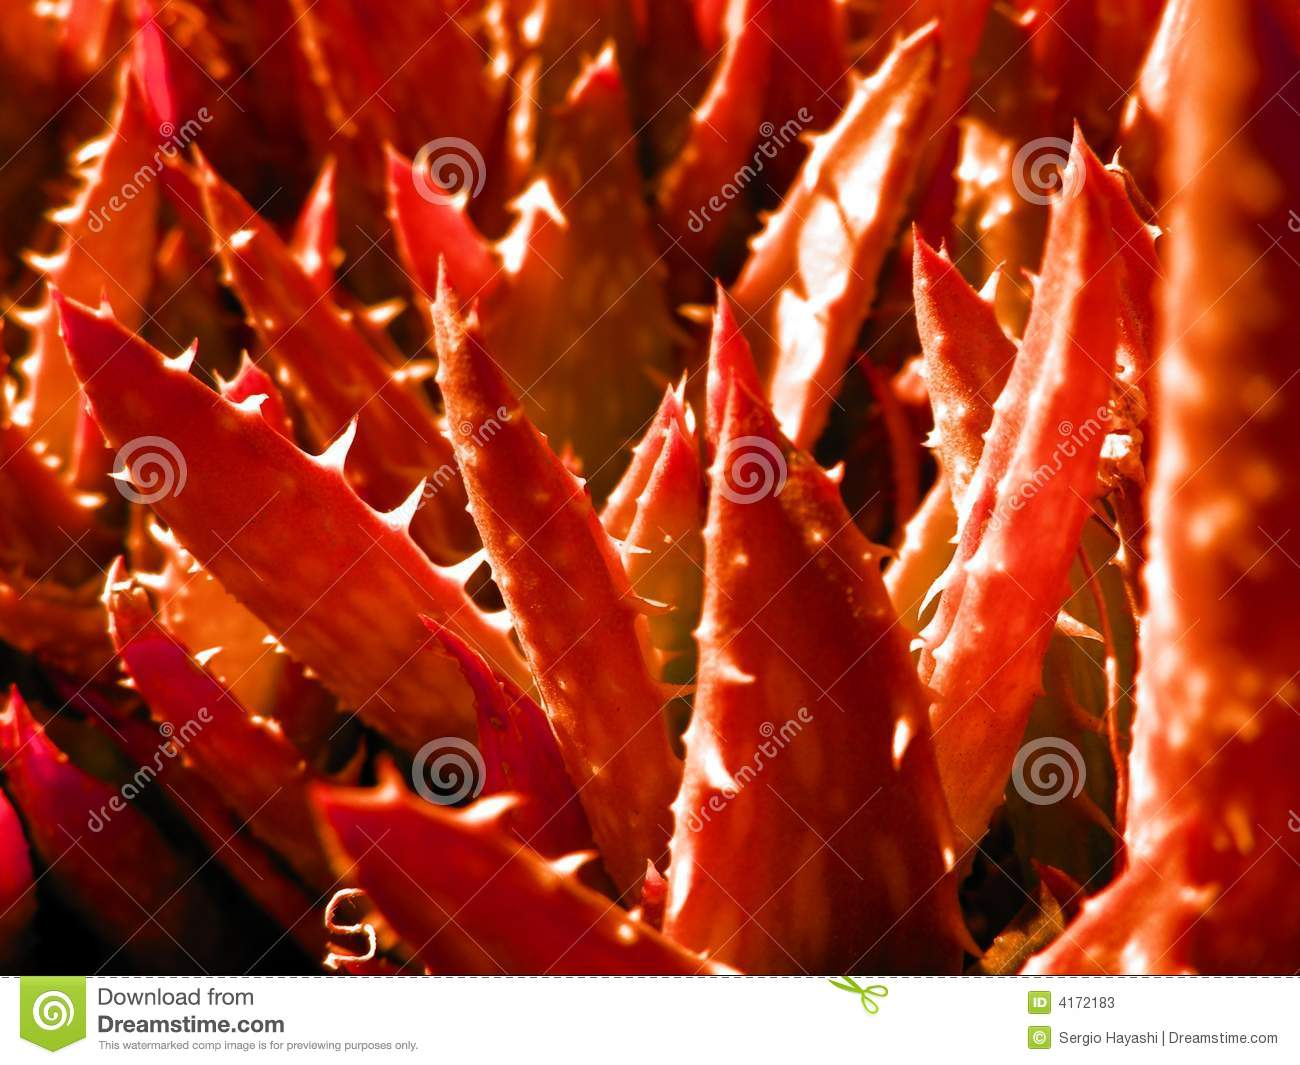 Aloe forrest in red